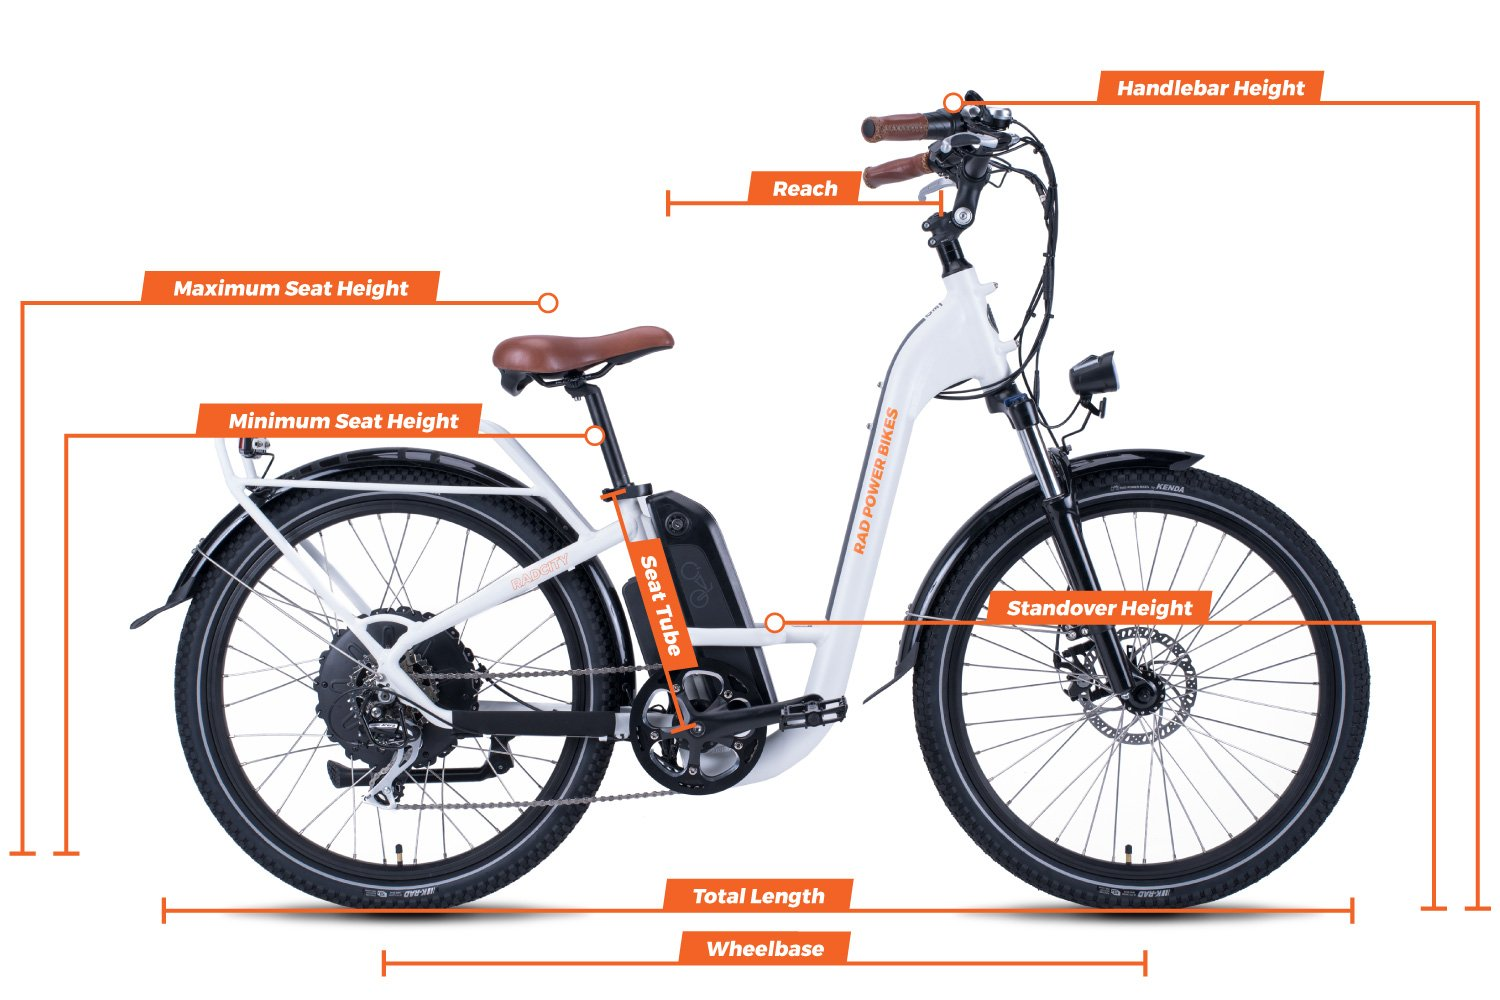 Geometry chart for the RadCity Step-Thru Electric Commuter Bike Version 3